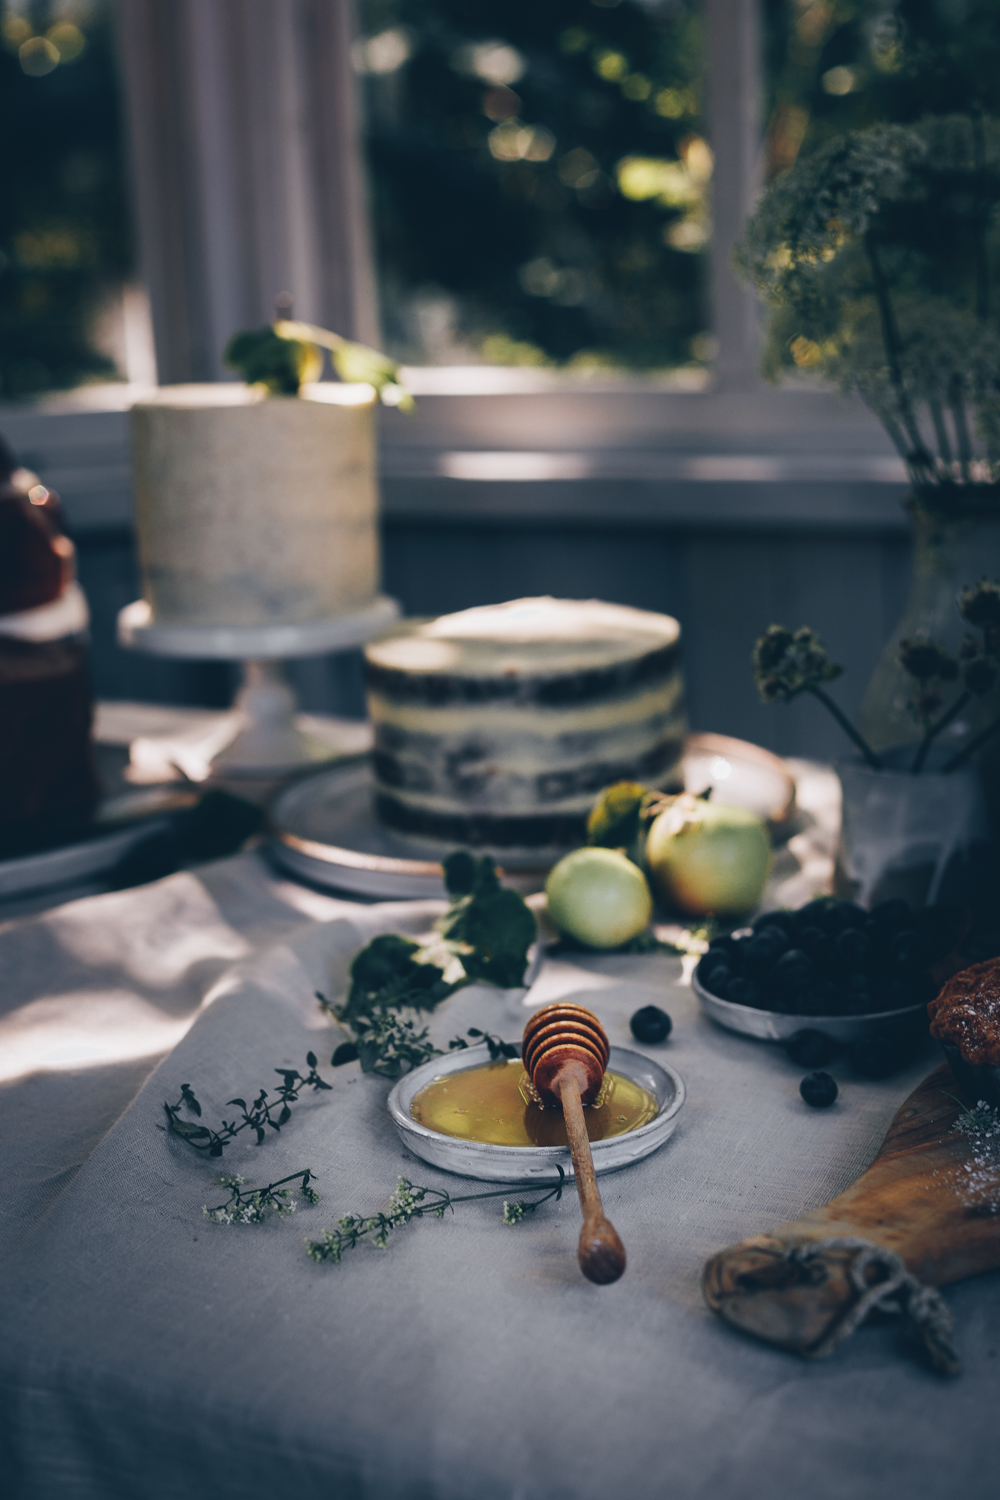 A Food Styling & Photography Retreat in Gotland, Sweden - An Experience Report by Kati of black.white.vivid. - food photography, food photography workshop, recipe photography, travel photography, linda lomelino, linda_lomelino, call me cupcake, krissy o'shea, cottagefarm, Cottage Farm, Olivia Thorden, Adelaster Food Textures, adelasterfoodtextures